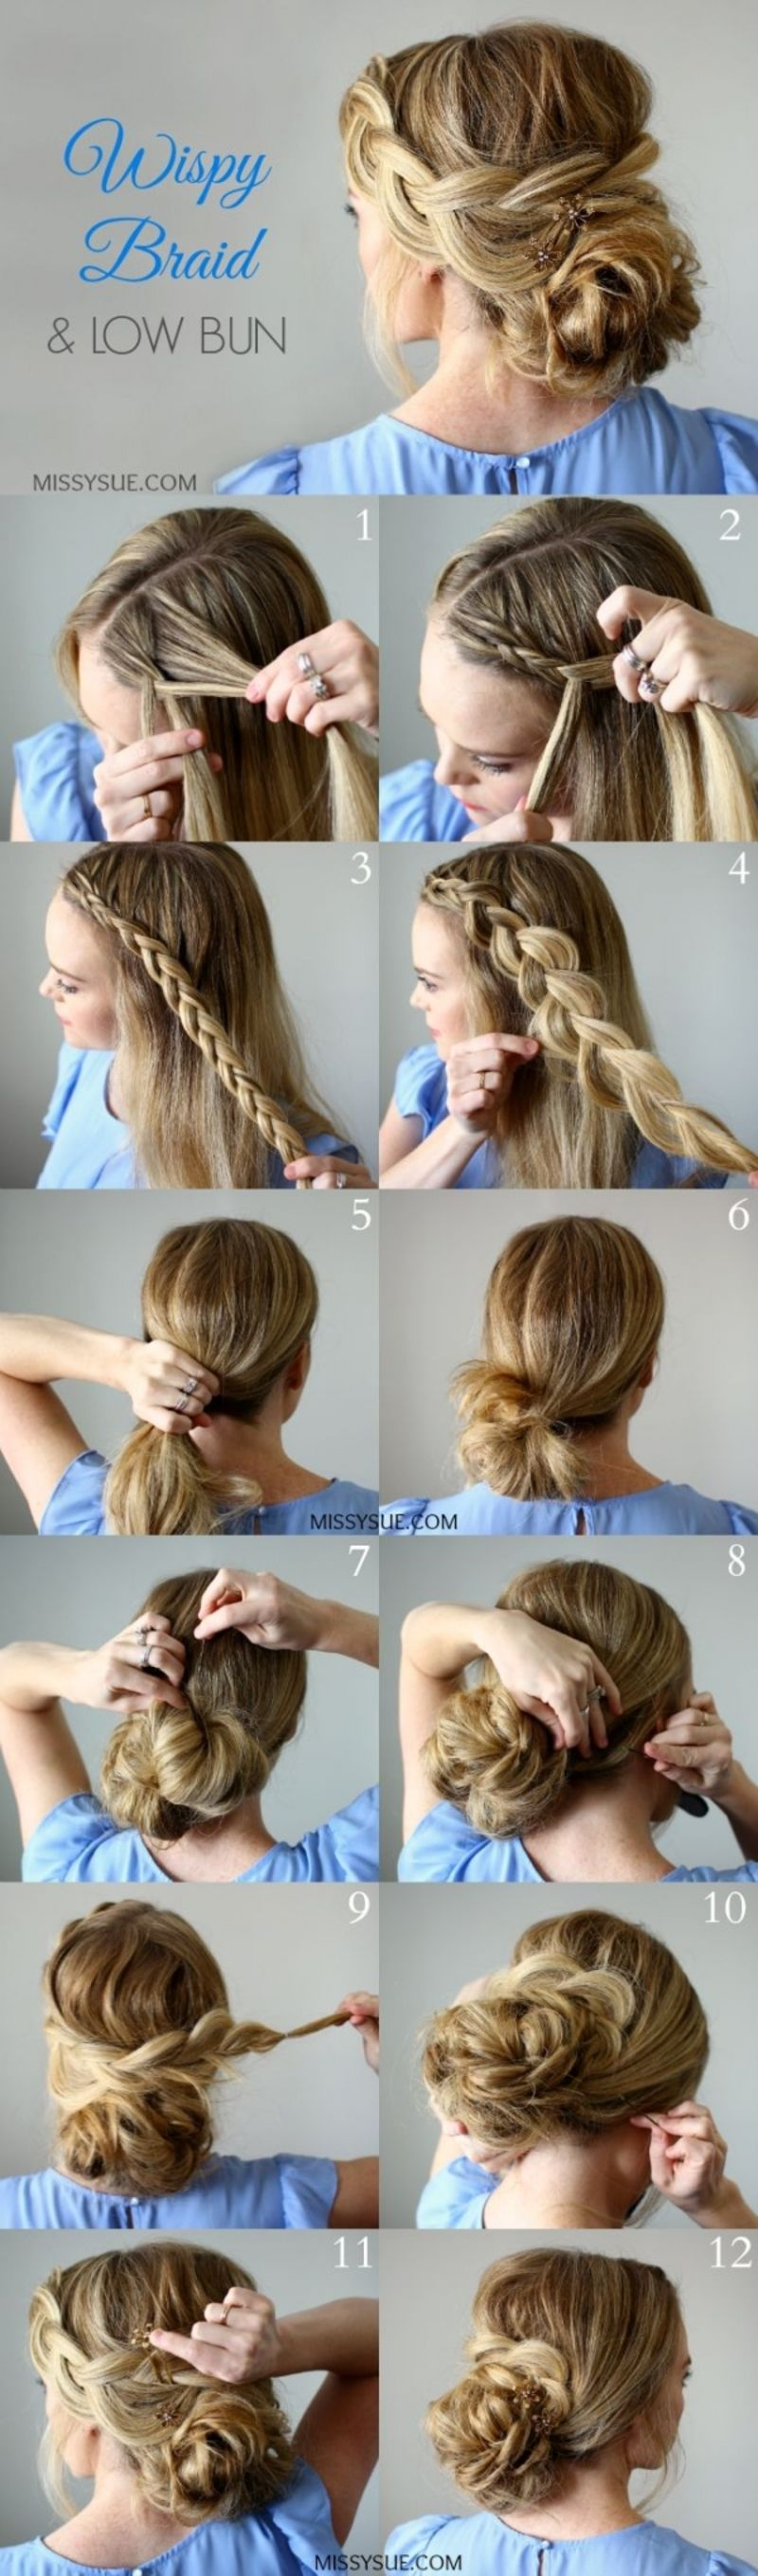 Simple and pretty peinado noche pinterest hair style updos